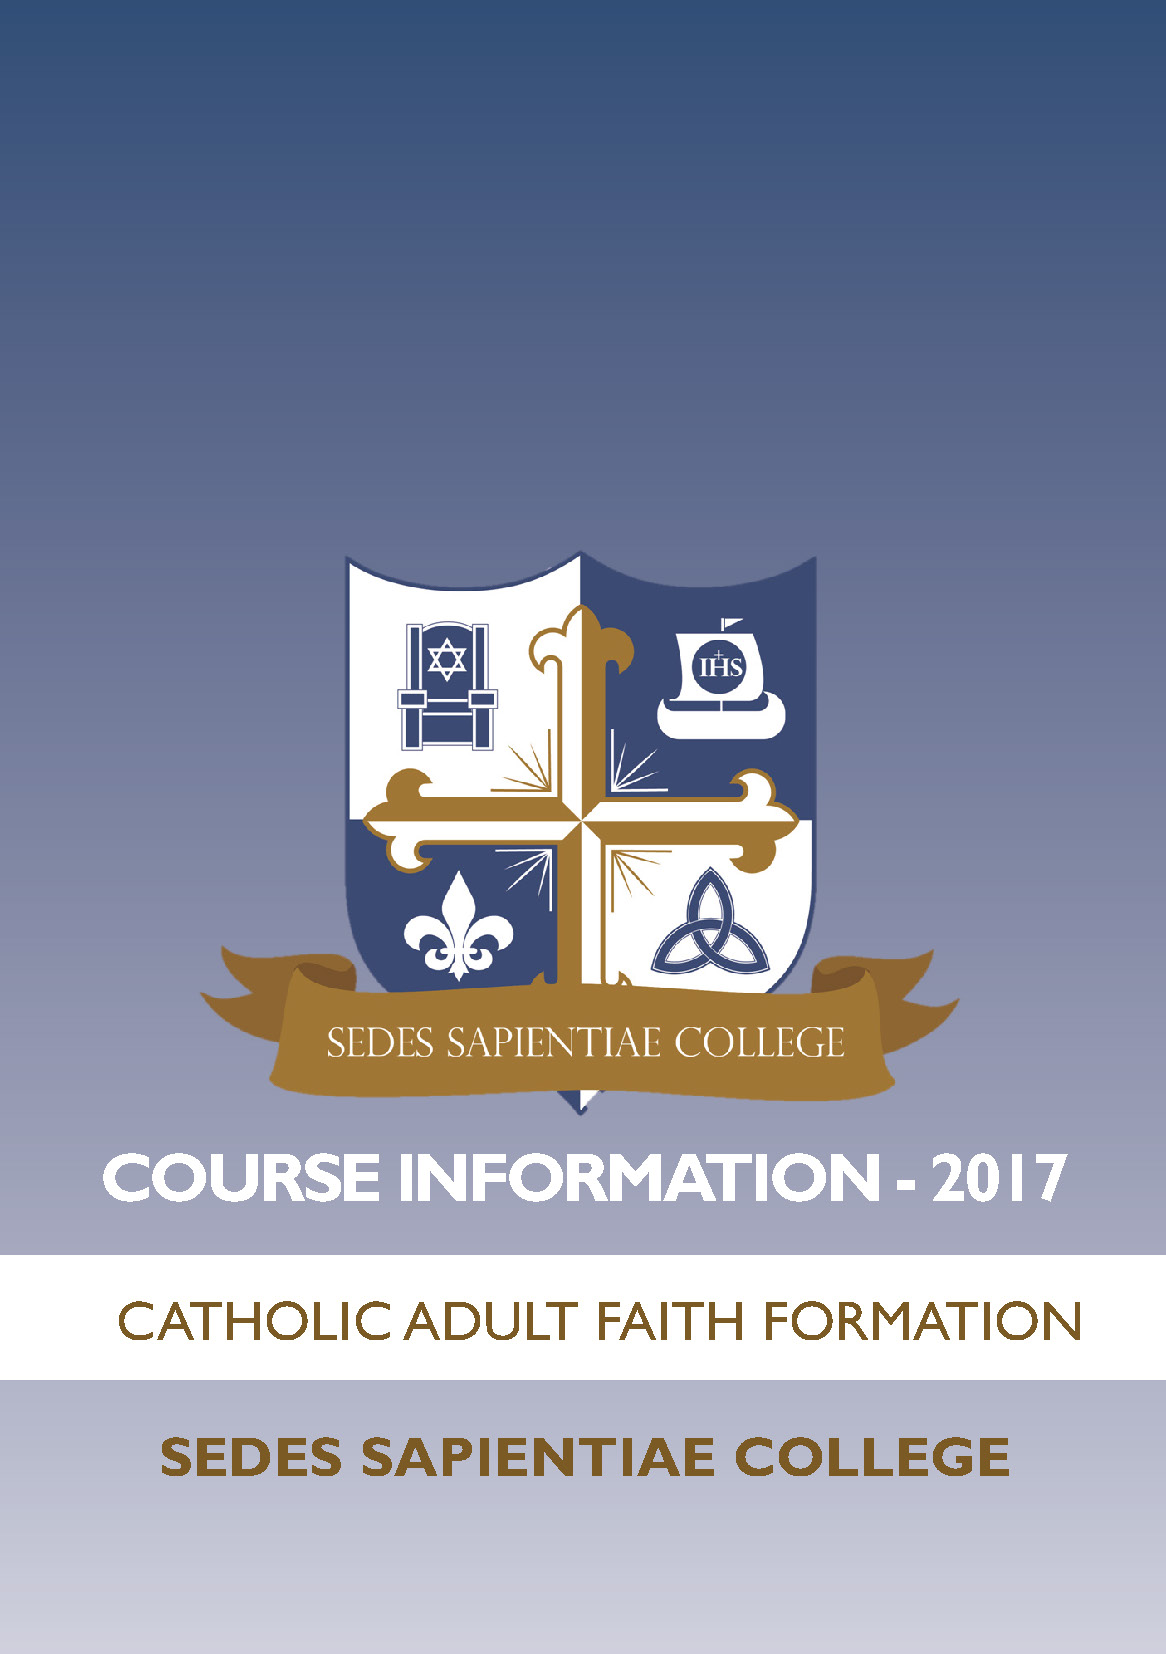 ssc-course-outline-2017-page-01.jpg